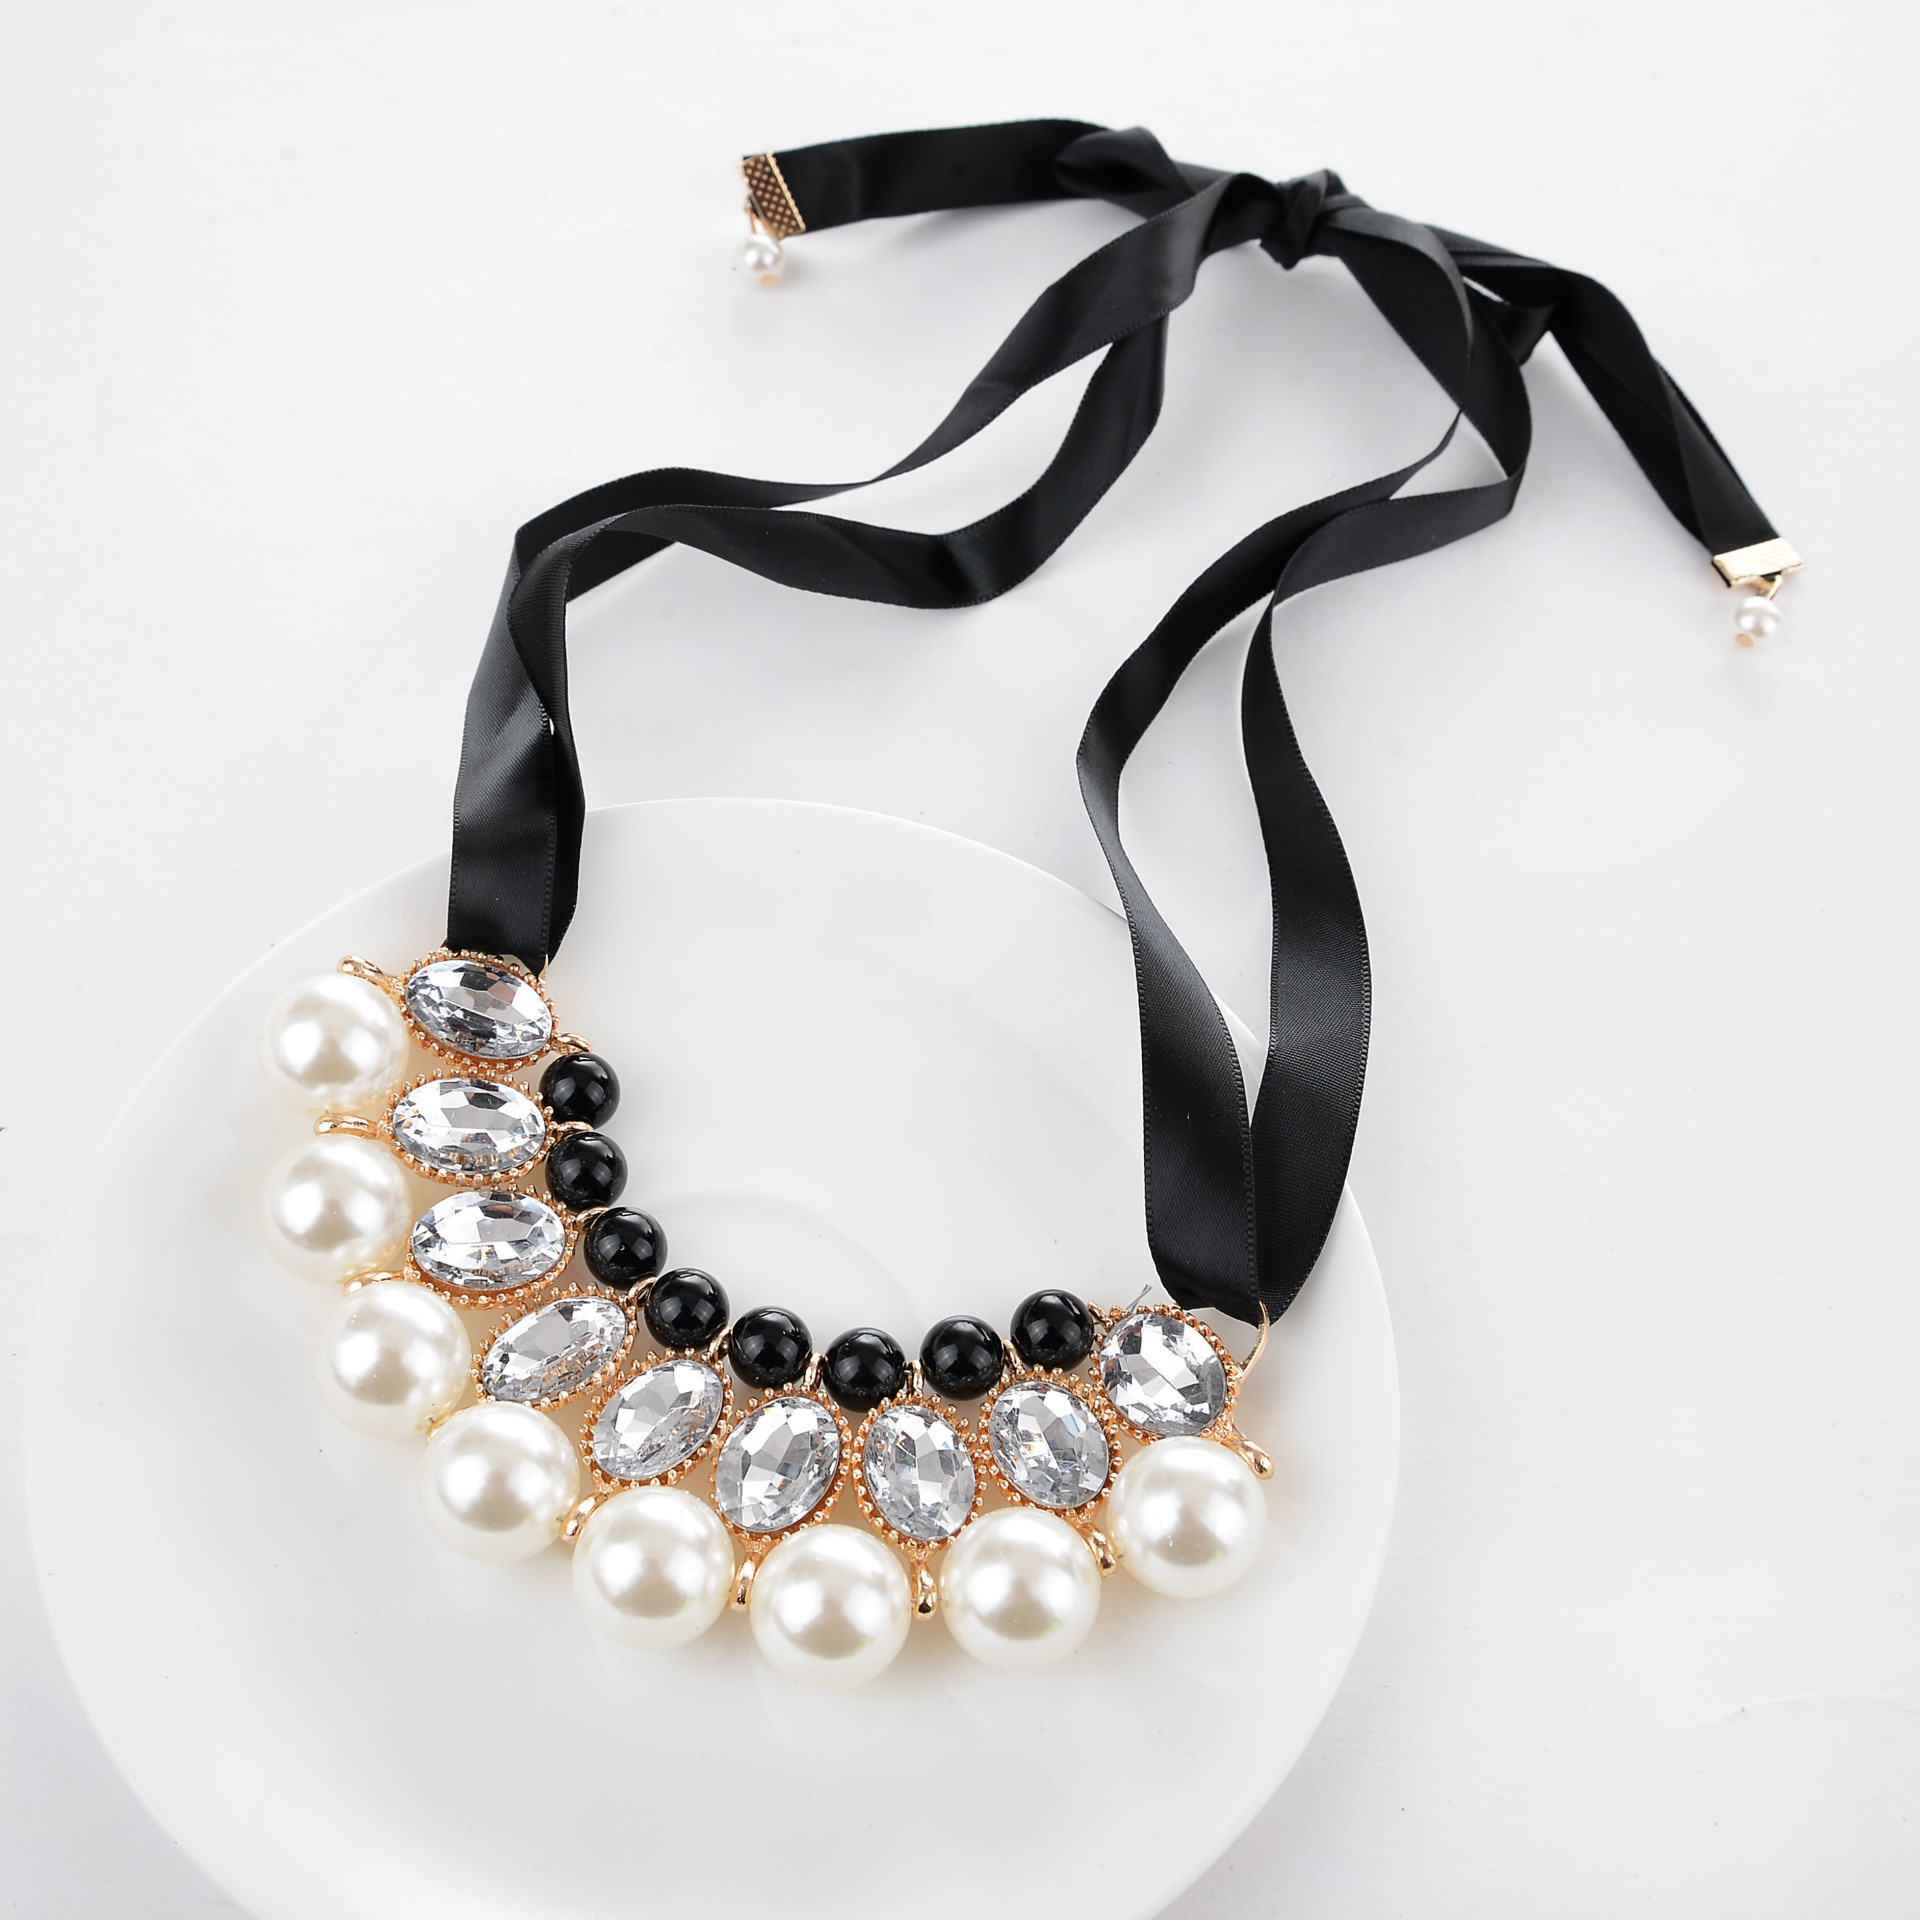 YMN-06083 europe style pink ribbon with big pearl    necklace Yiwu Jewelry Factory Fashion Accessories Manufacture Fashion Jewelry Supplier.